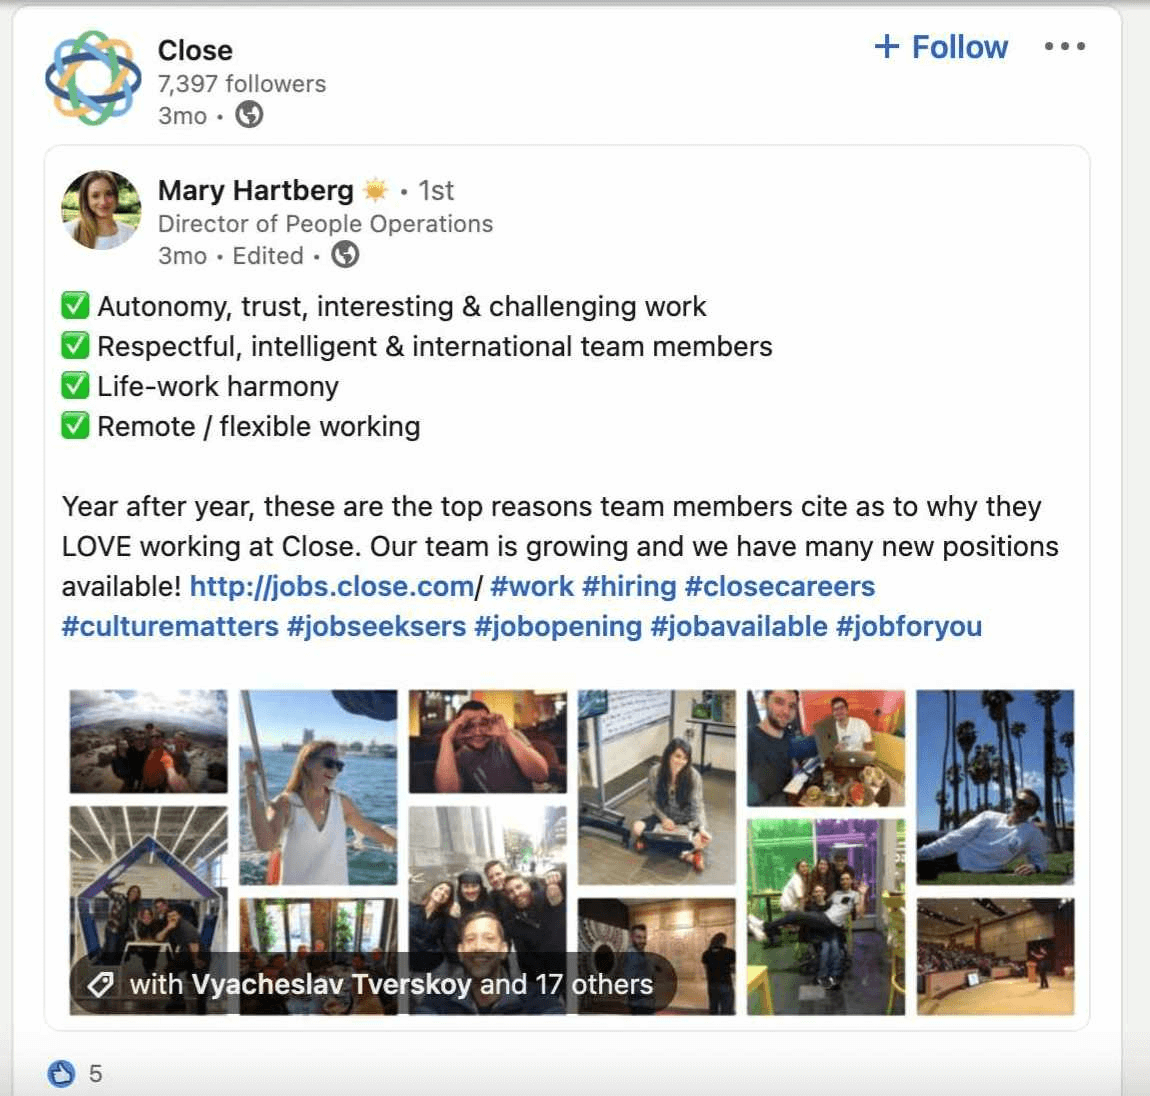 Example of an employer branding focused post by Close's director of people operations. The goal of this post is to position the company as a great place to work and get new applications in. Platform: Linkedin